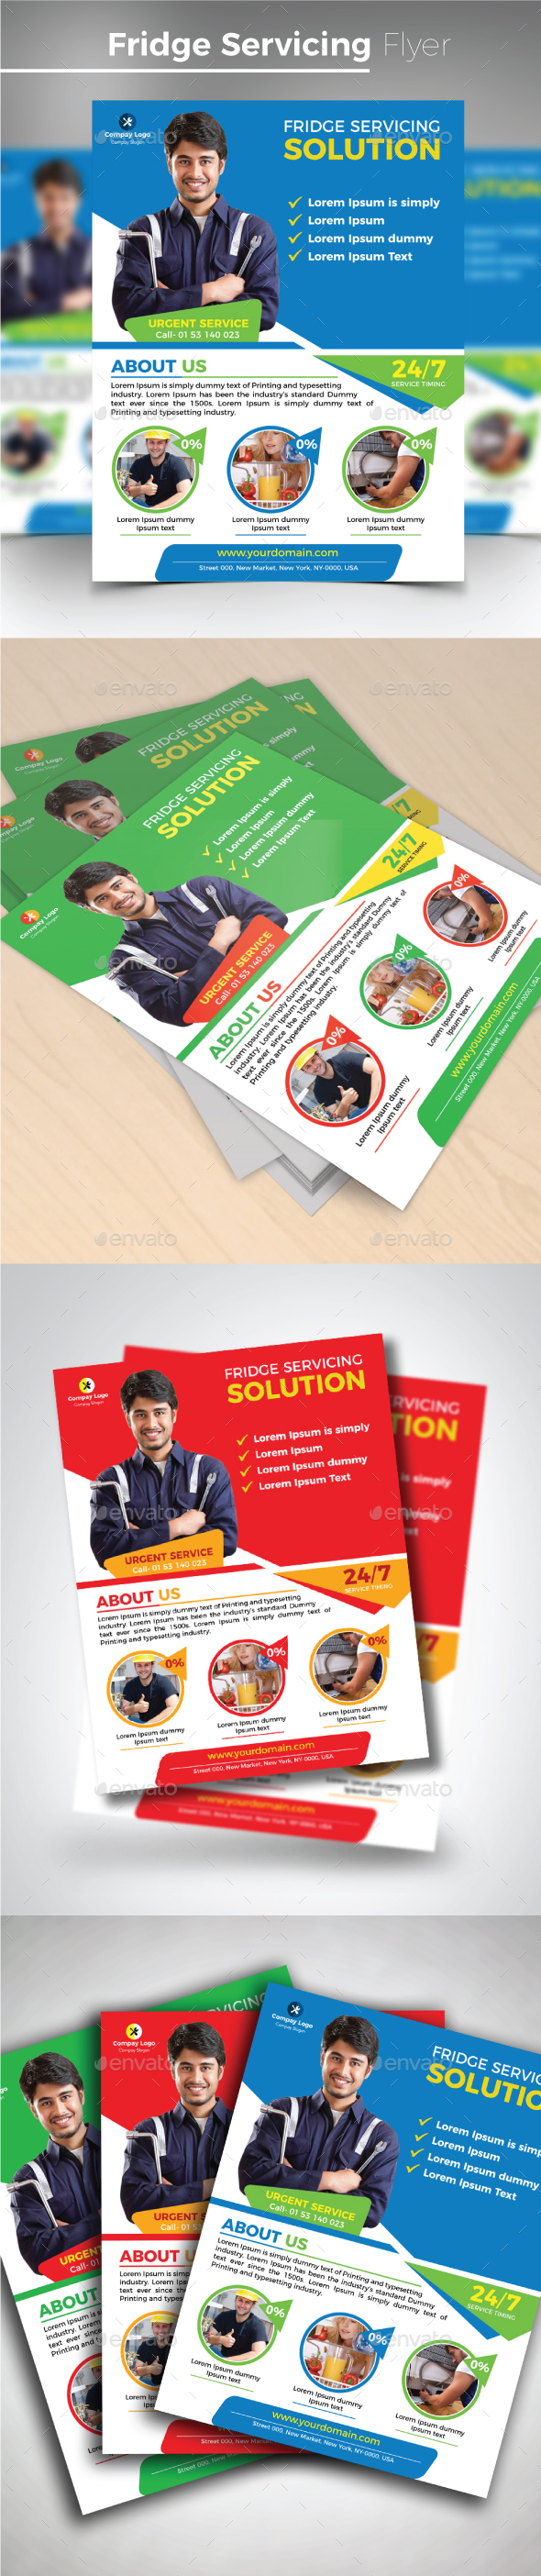 Fridge Servicing Flyer - Commerce Flyers